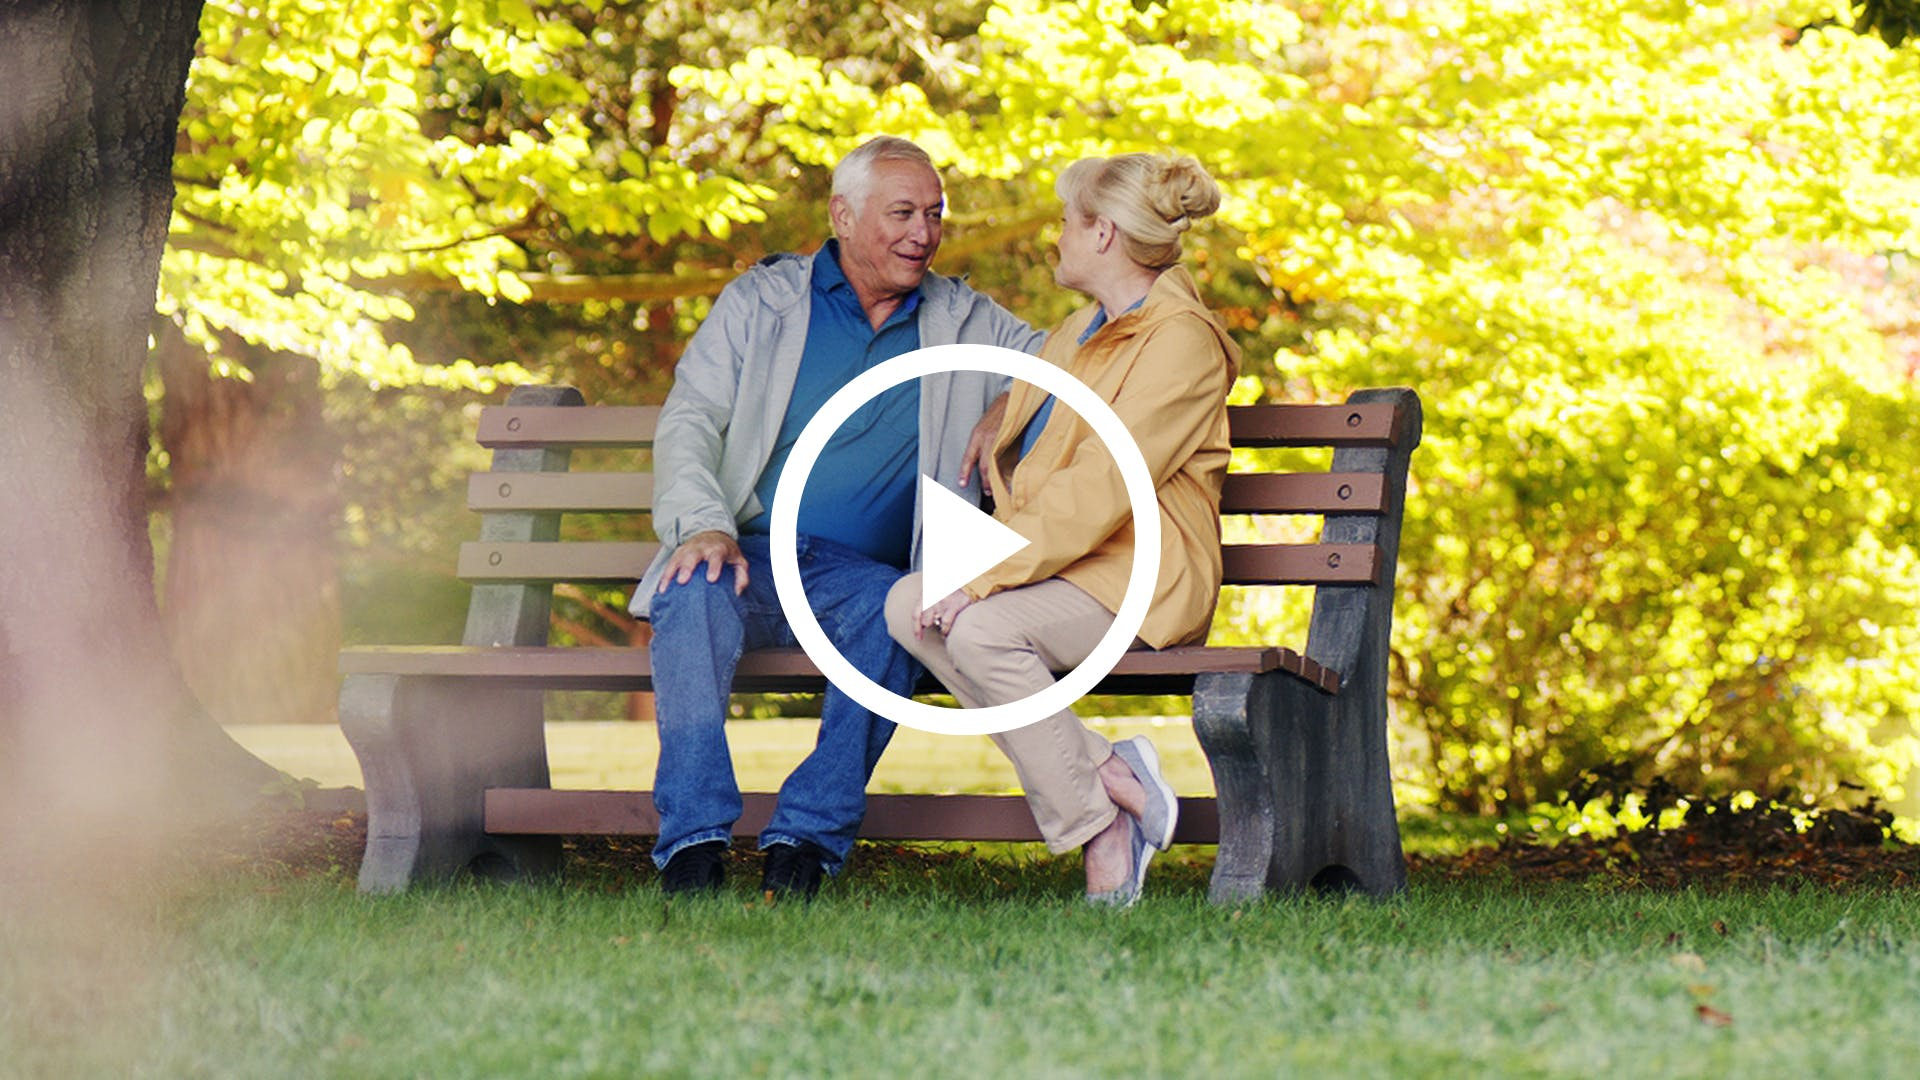 Life with COPD video thumbnail